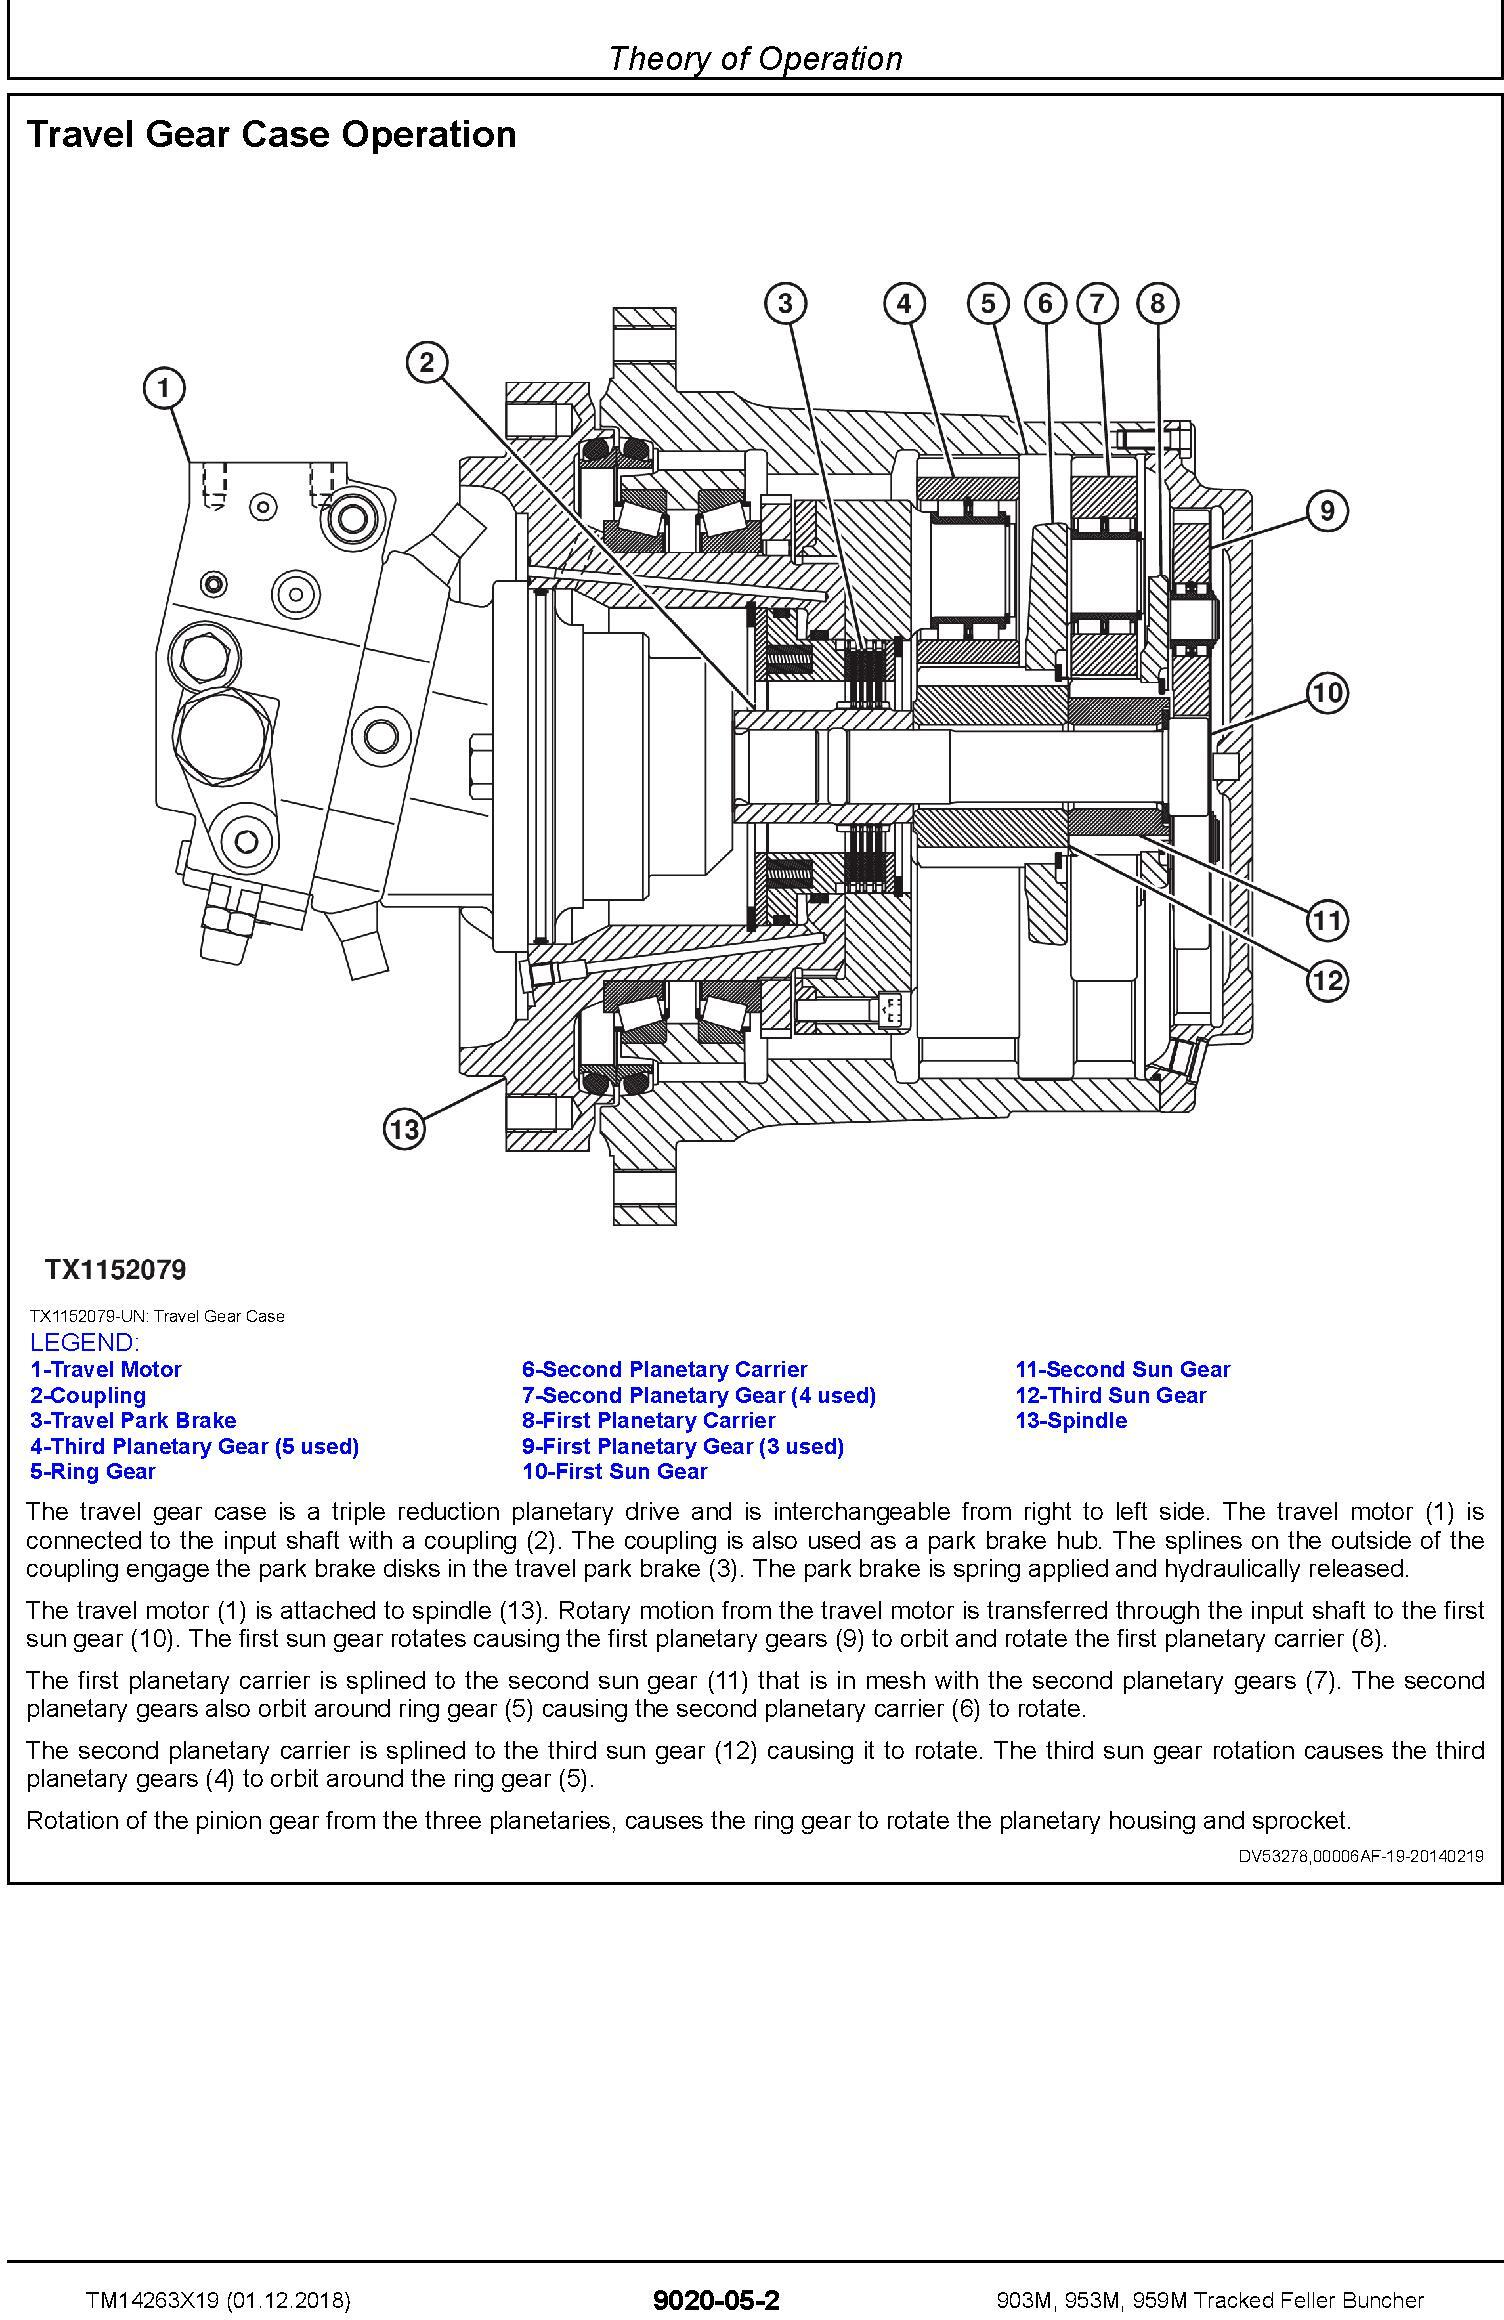 John Deere 903M,953M,959M (SN.C317982-,D317982-) Feller Buncher Diagnostic Service Manual TM14263X19 - 1